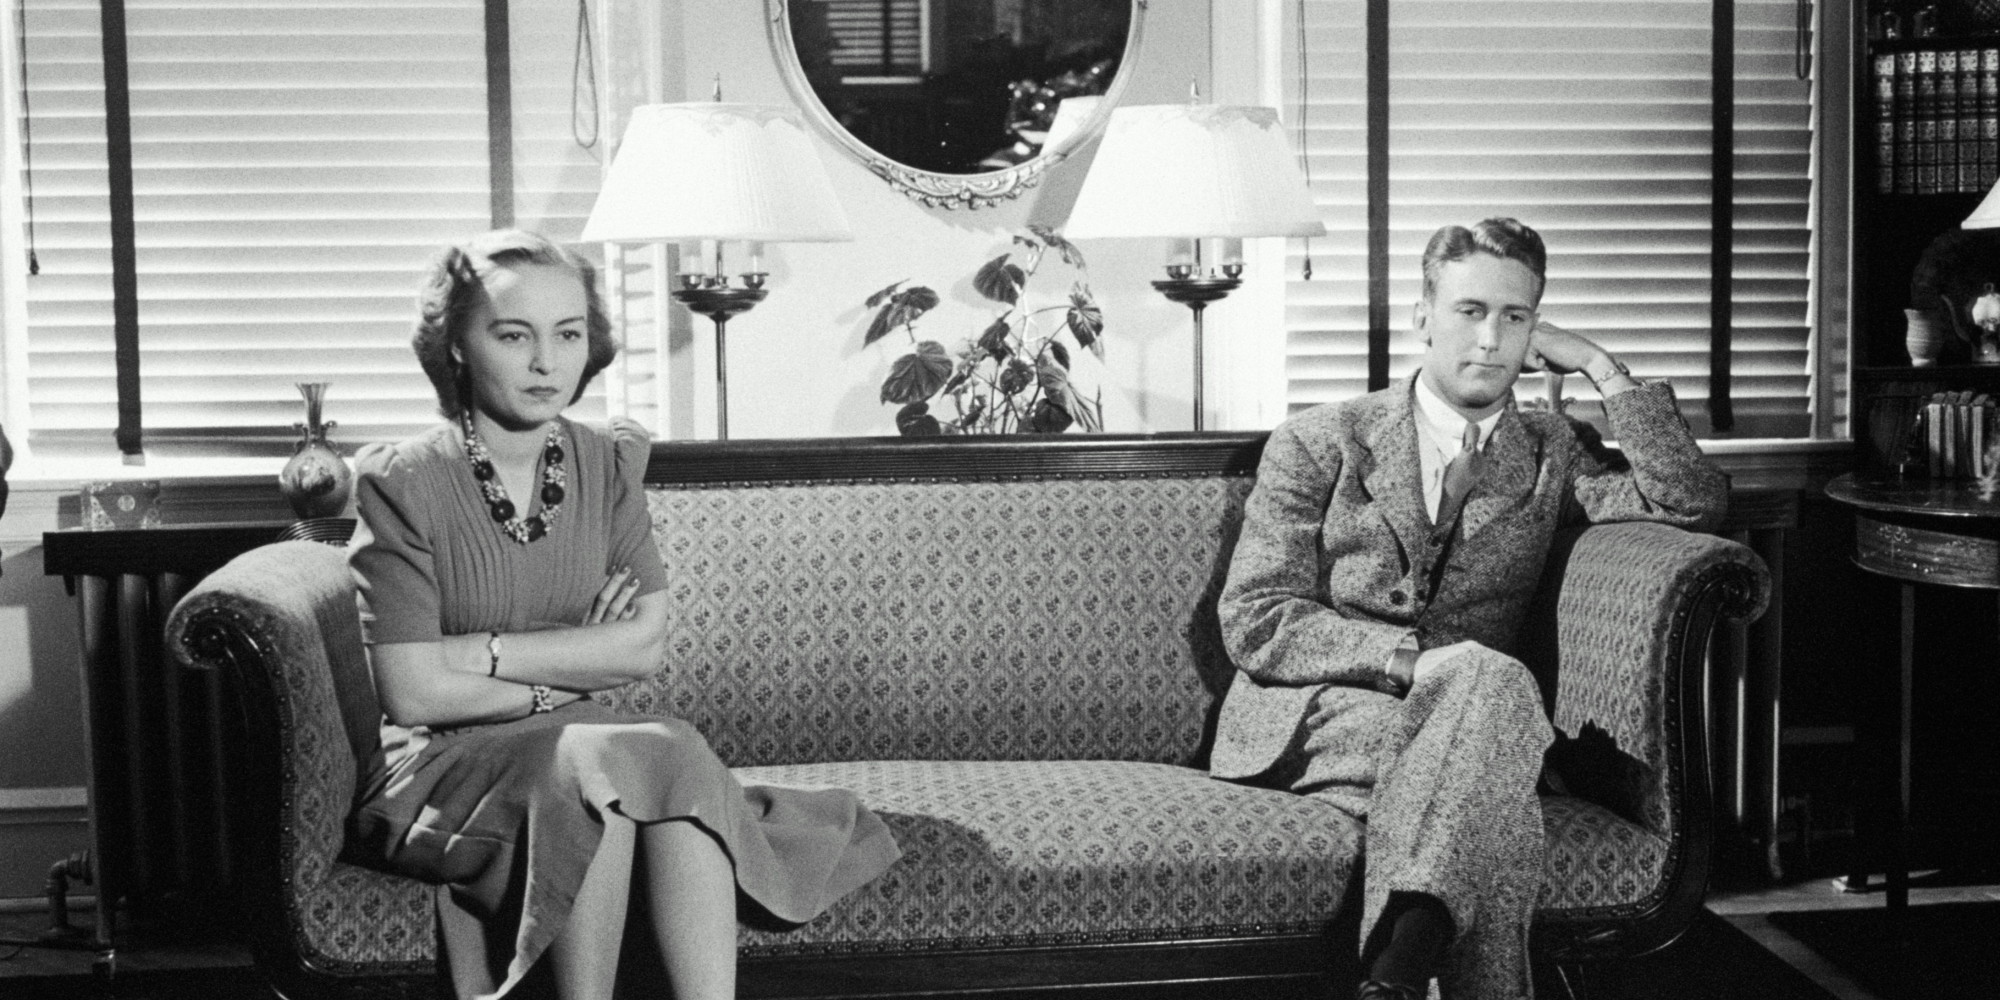 Vintage photo of a married couple sitting in distance